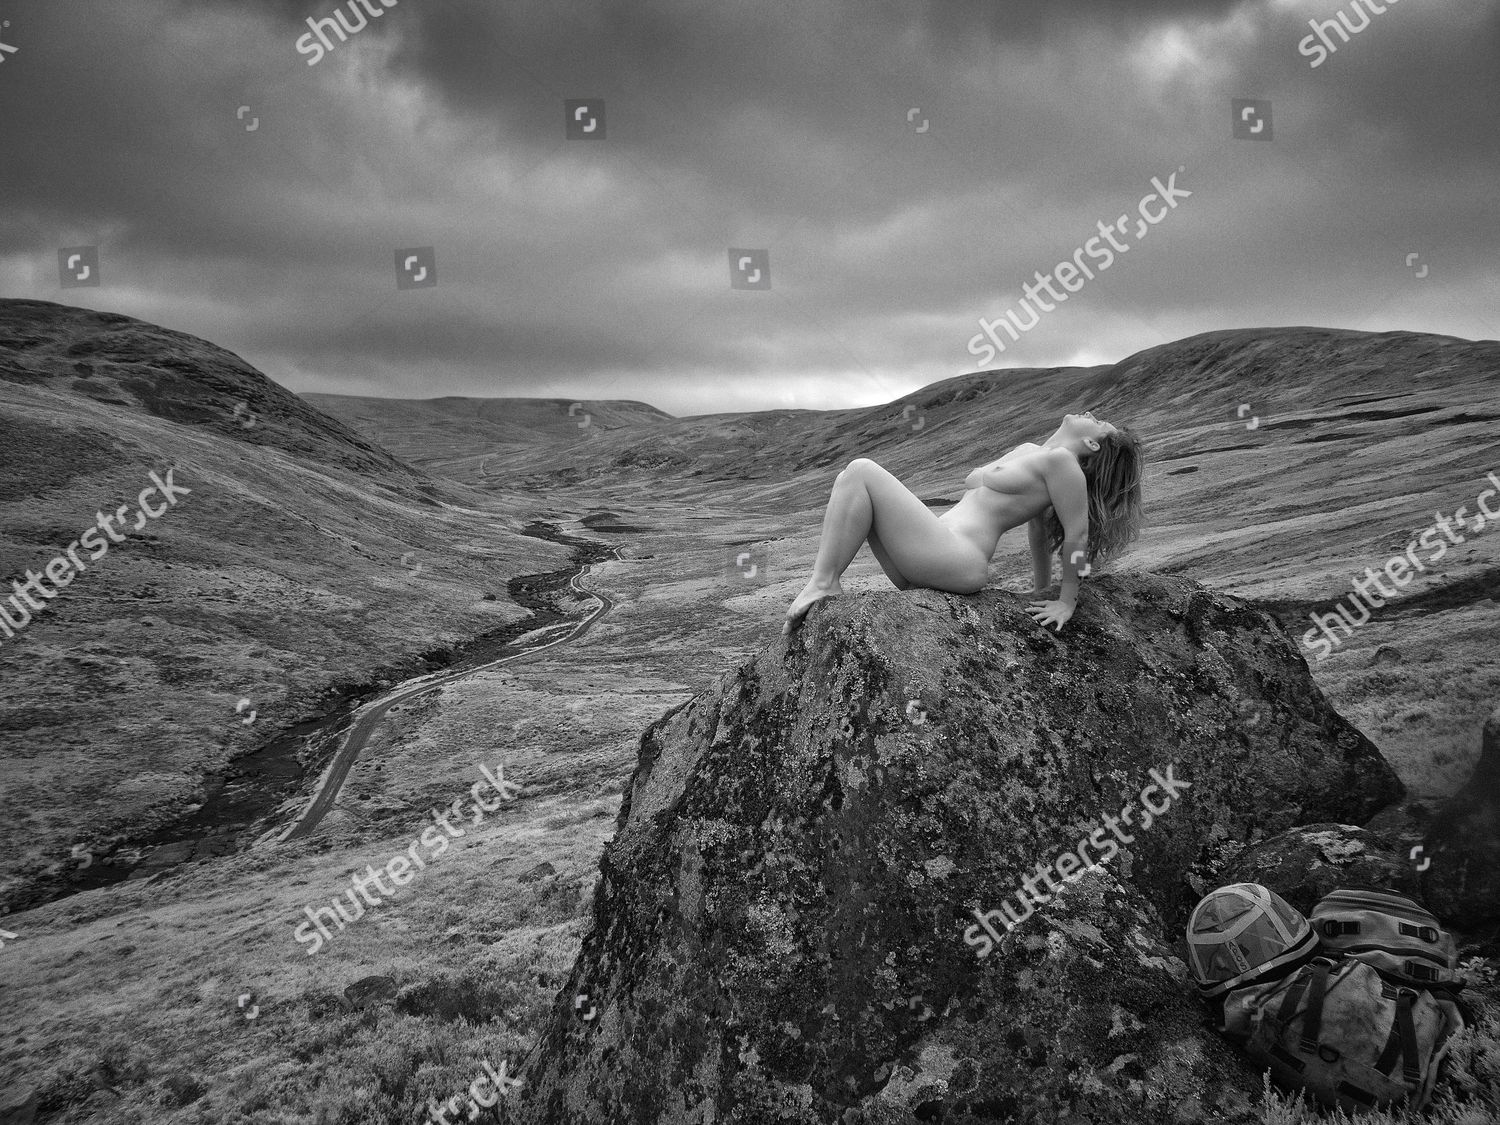 Military wives photographed nude